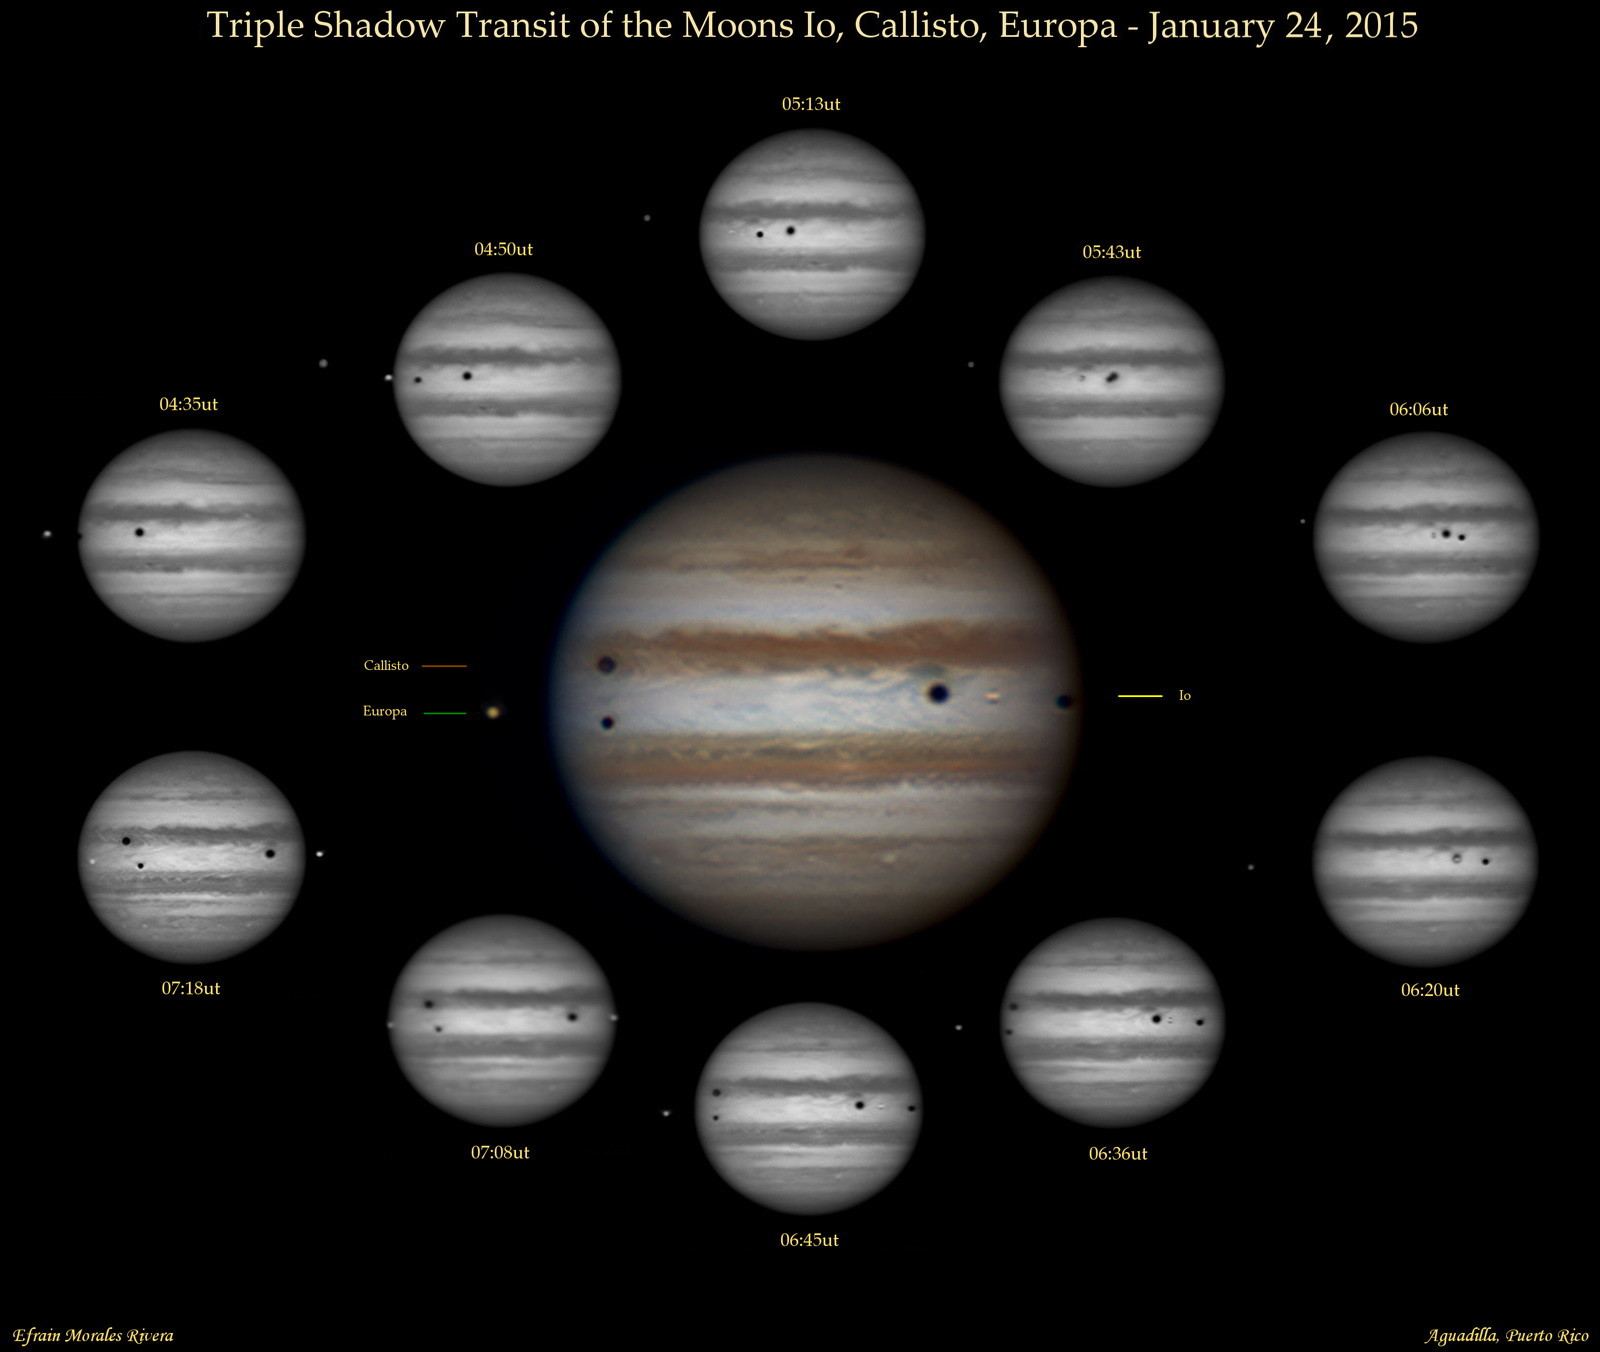 Triple Shadow Transit of Jupiter, Jan. 24, 2015